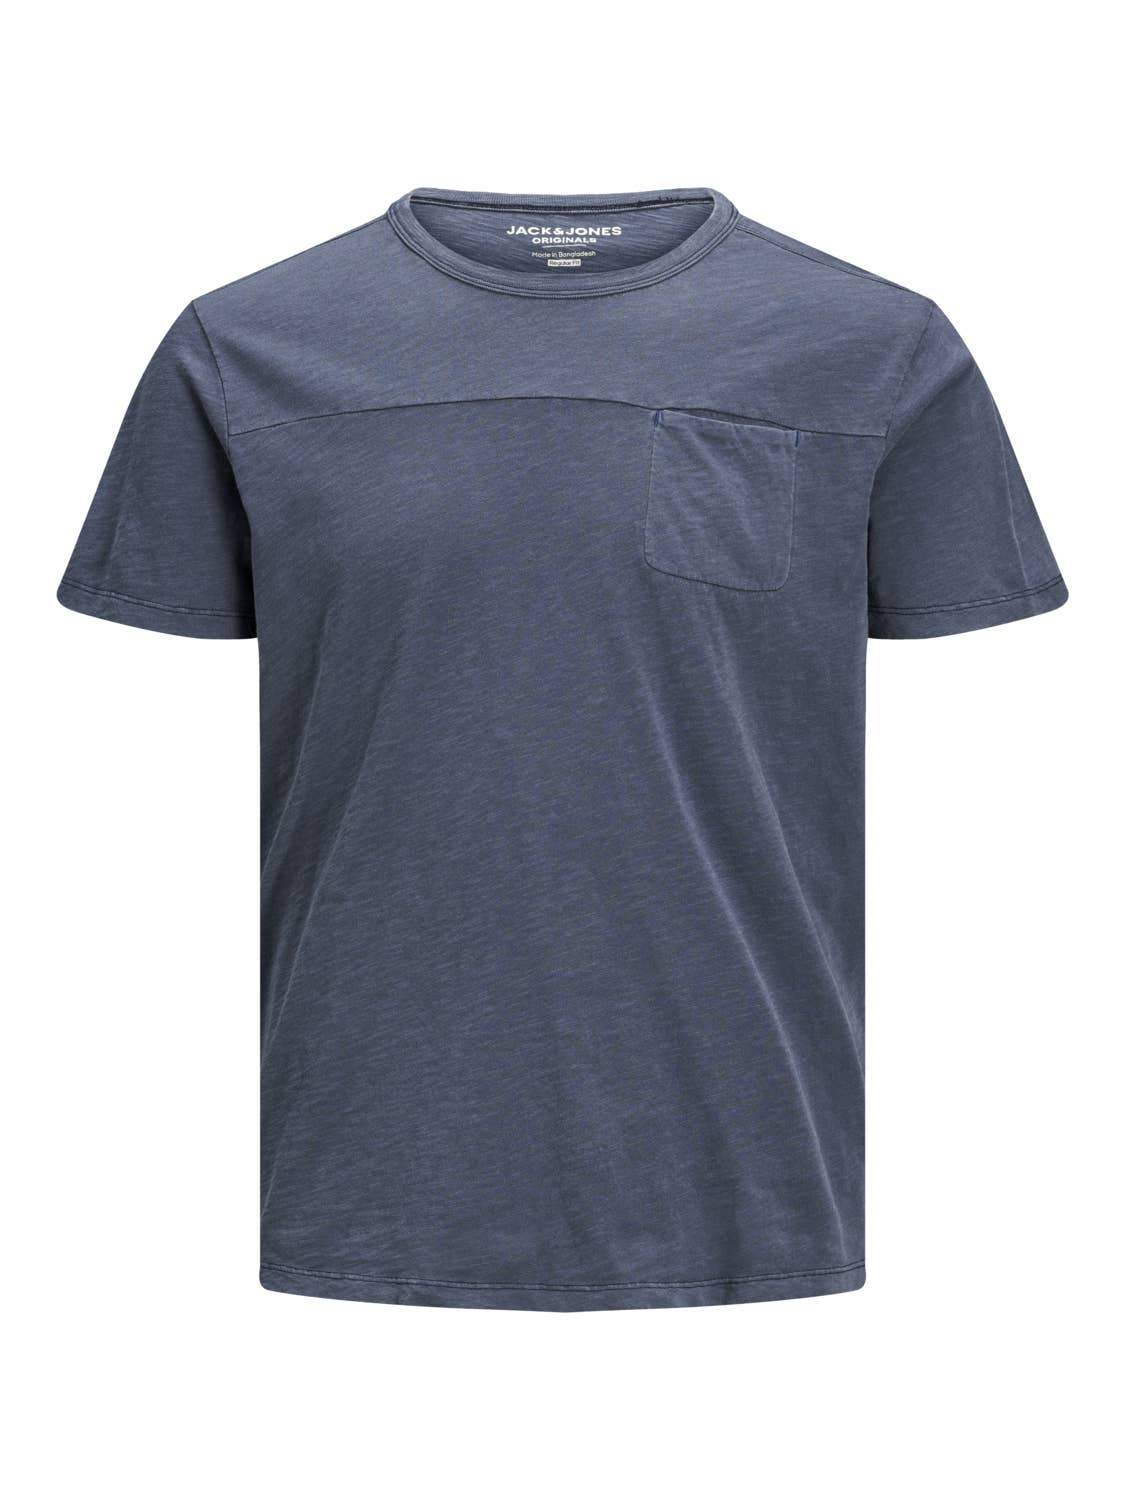 Men's washed plain crew neck t-shirt - Fisher Couture.com